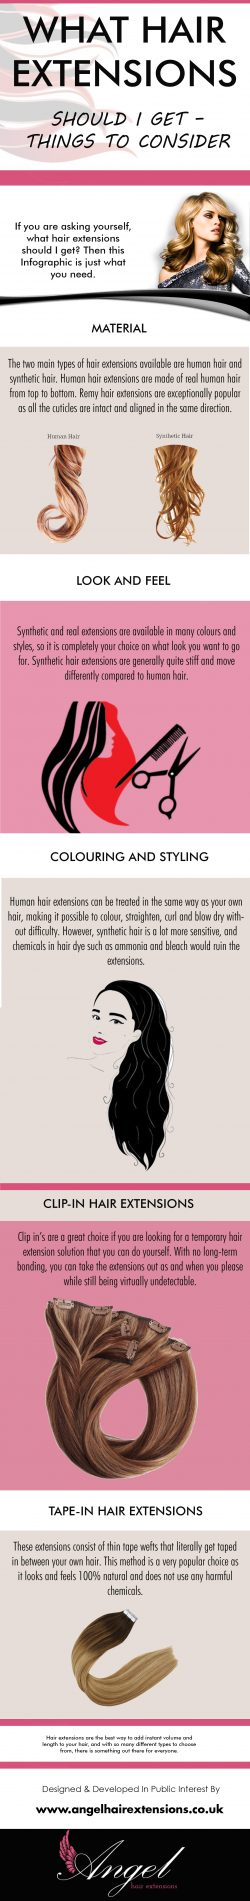 WHAT HAIR EXTENSIONS SHOULD I GET – THINGS TO CONSIDER